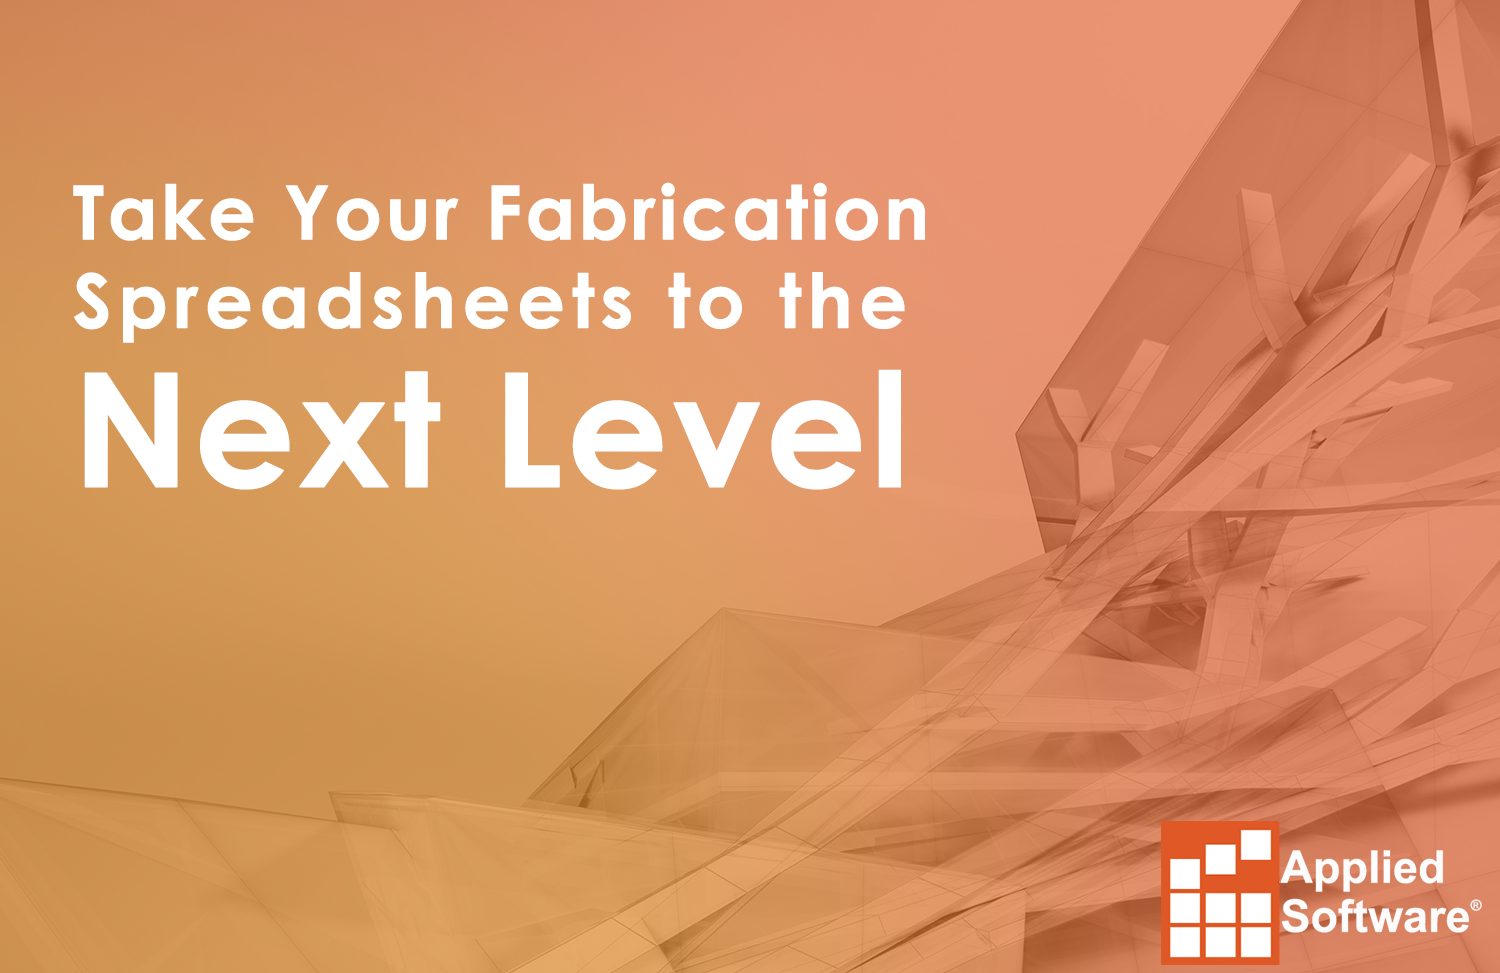 Take Your Fabrication Spreadsheets to the Next Level